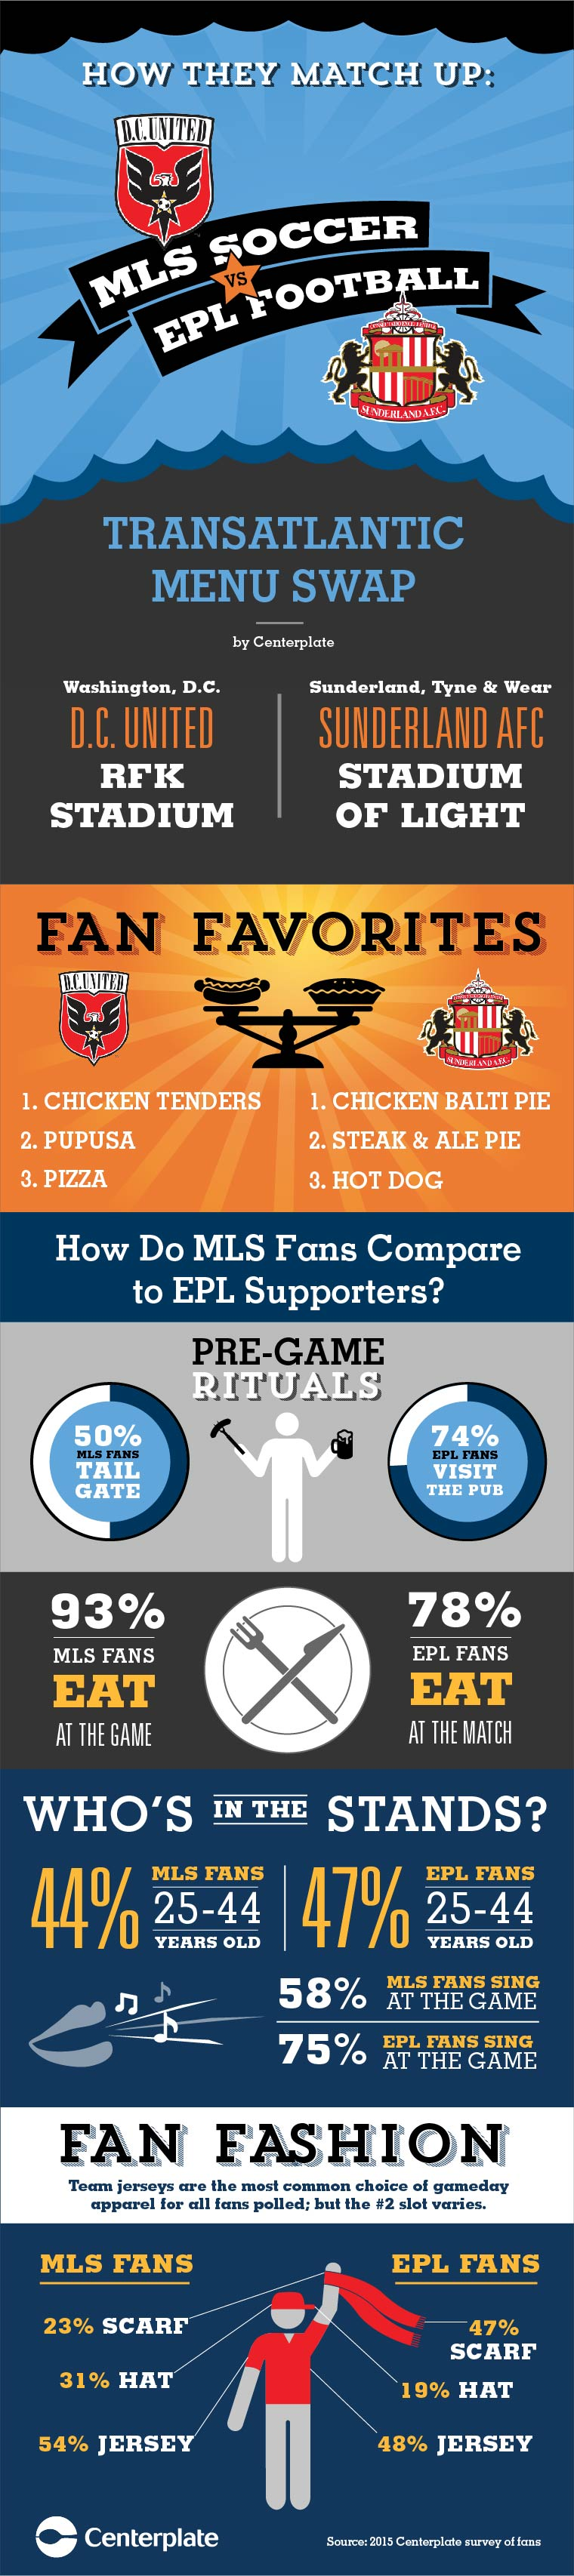 Centerplate fan survey comparison of fan behavior across the Atlantic.